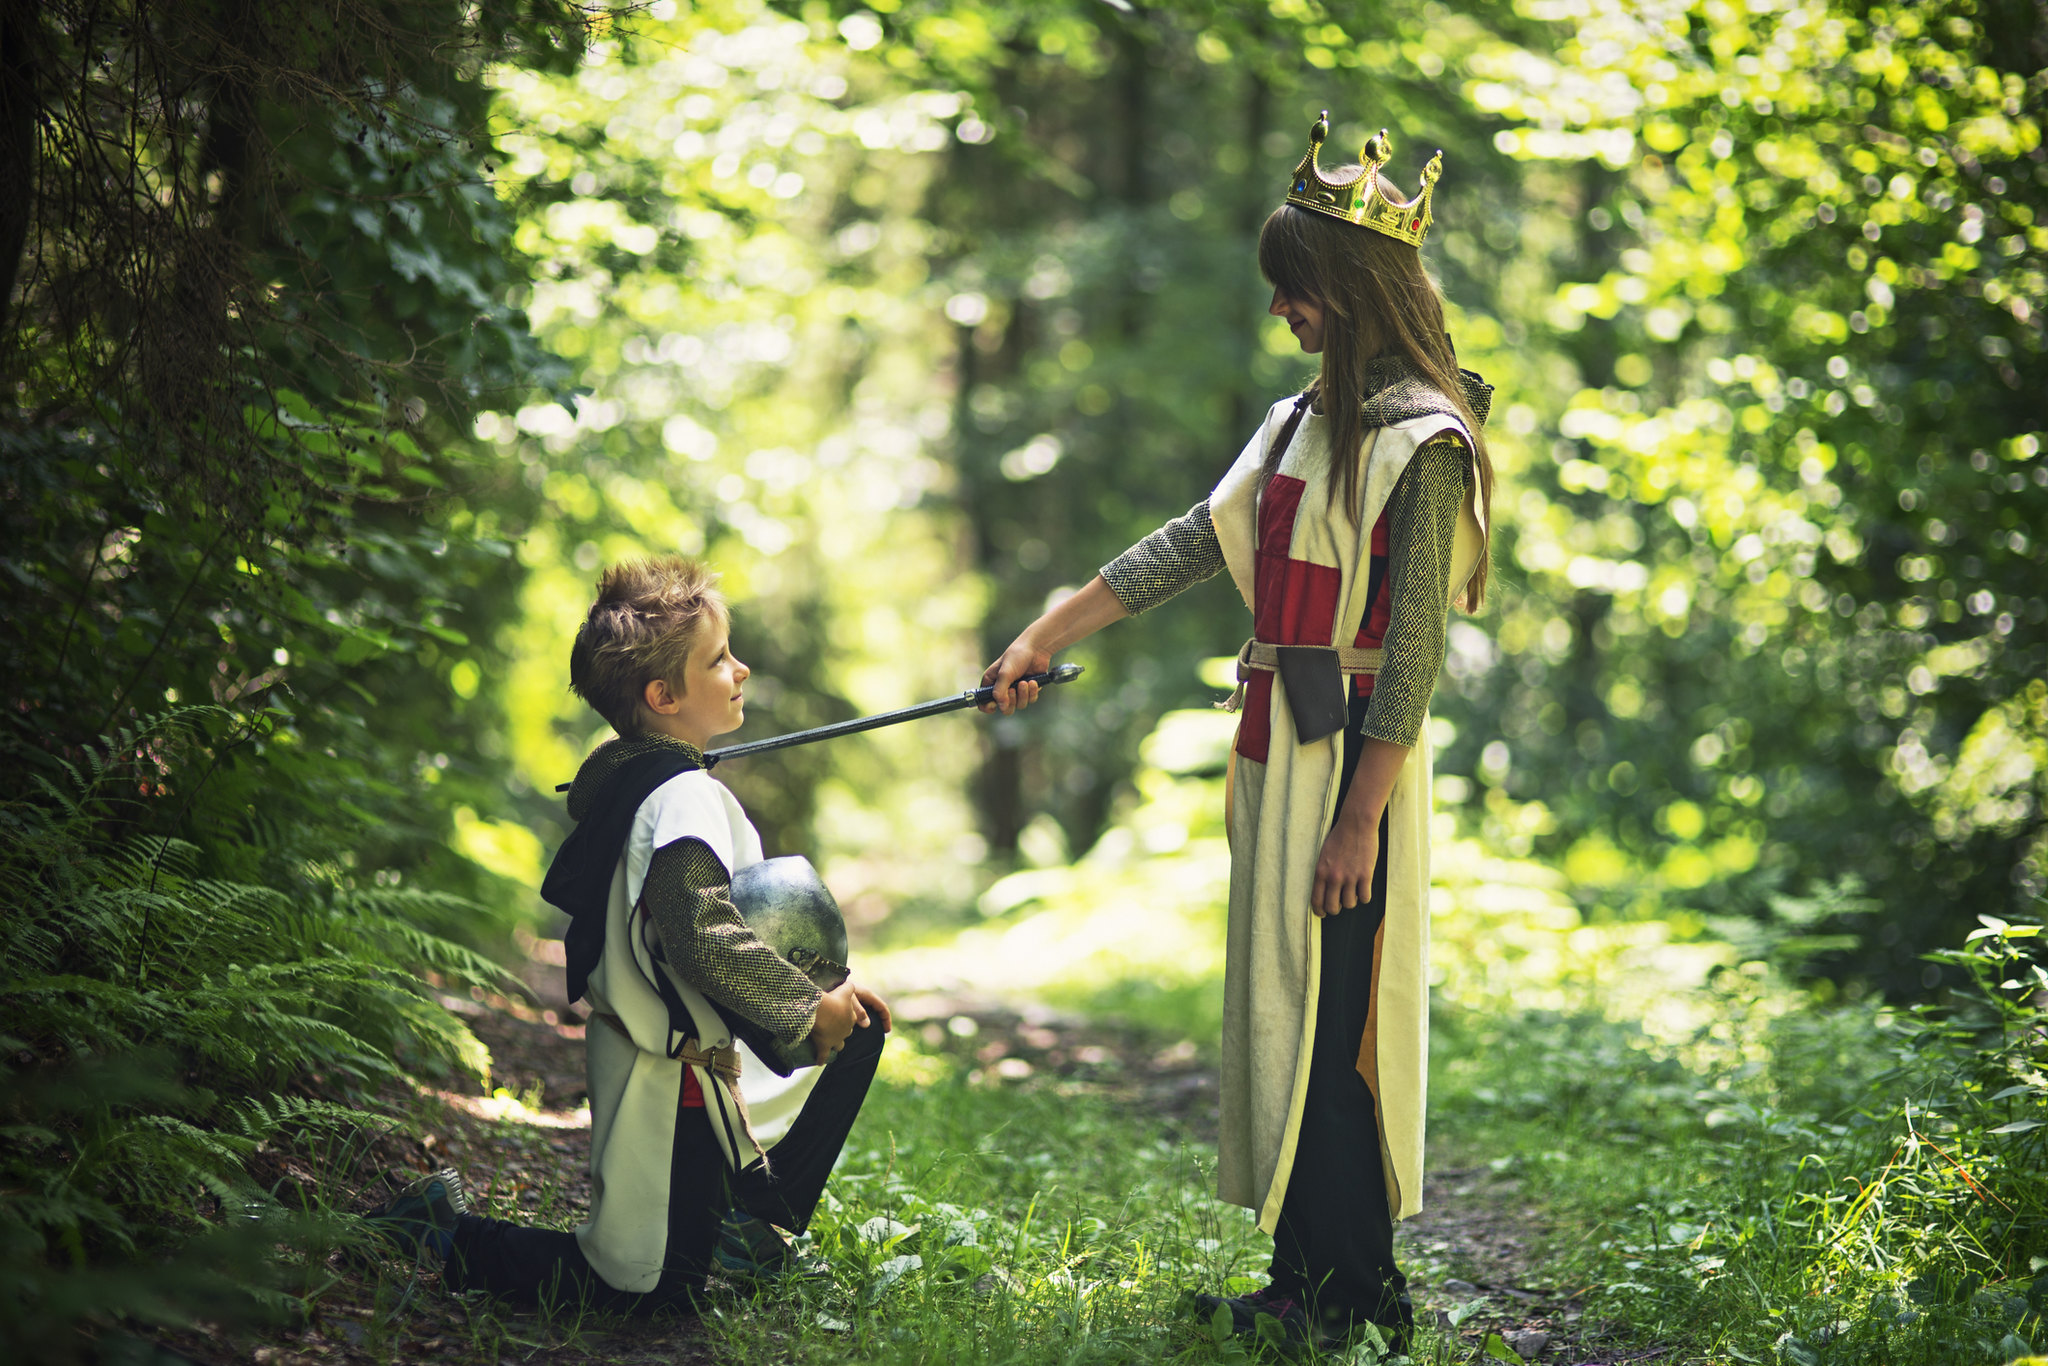 boy and girl dressed as knights in the forest